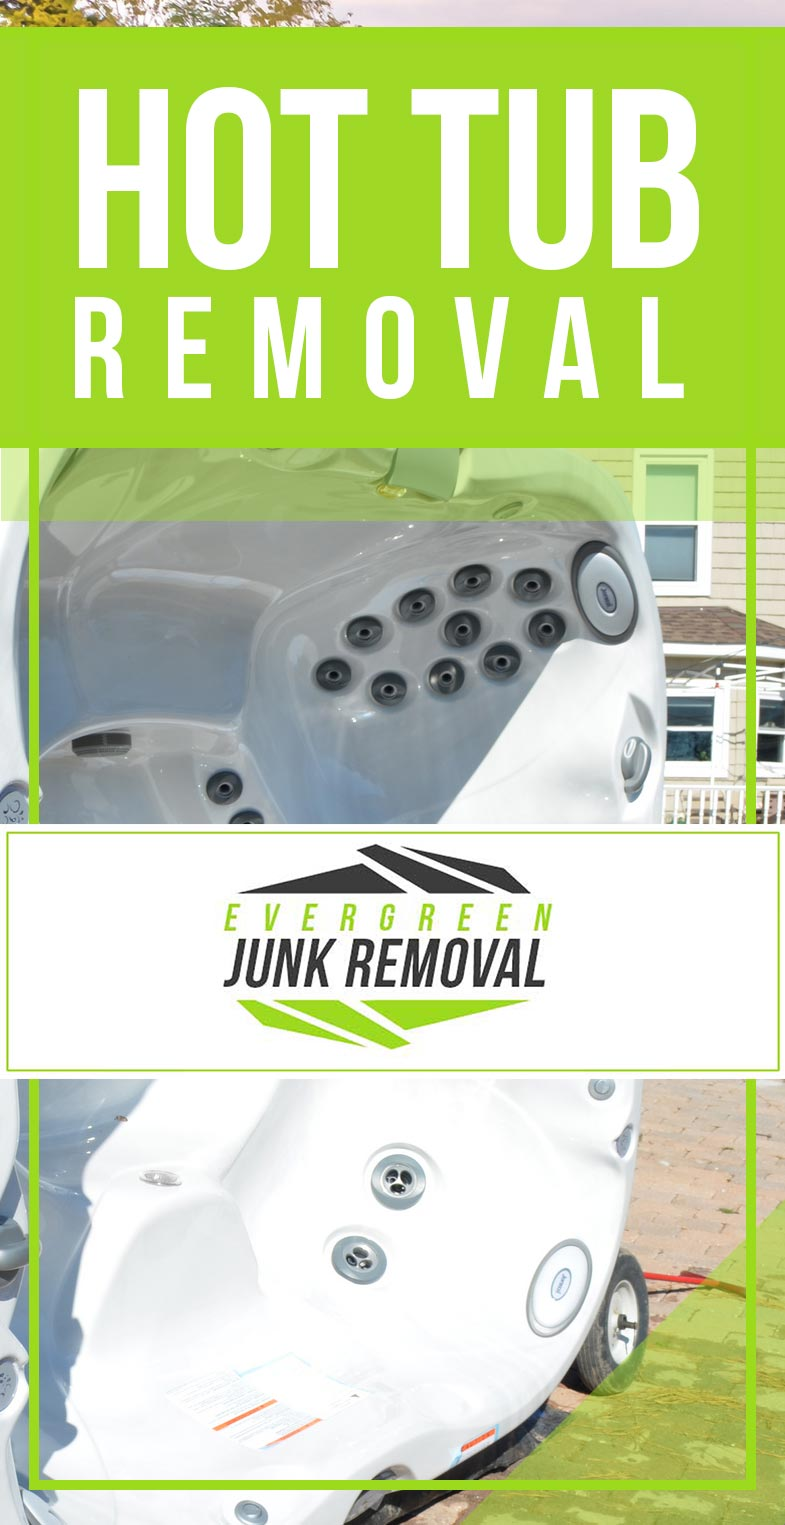 Delray Beach Hot Tub Removal